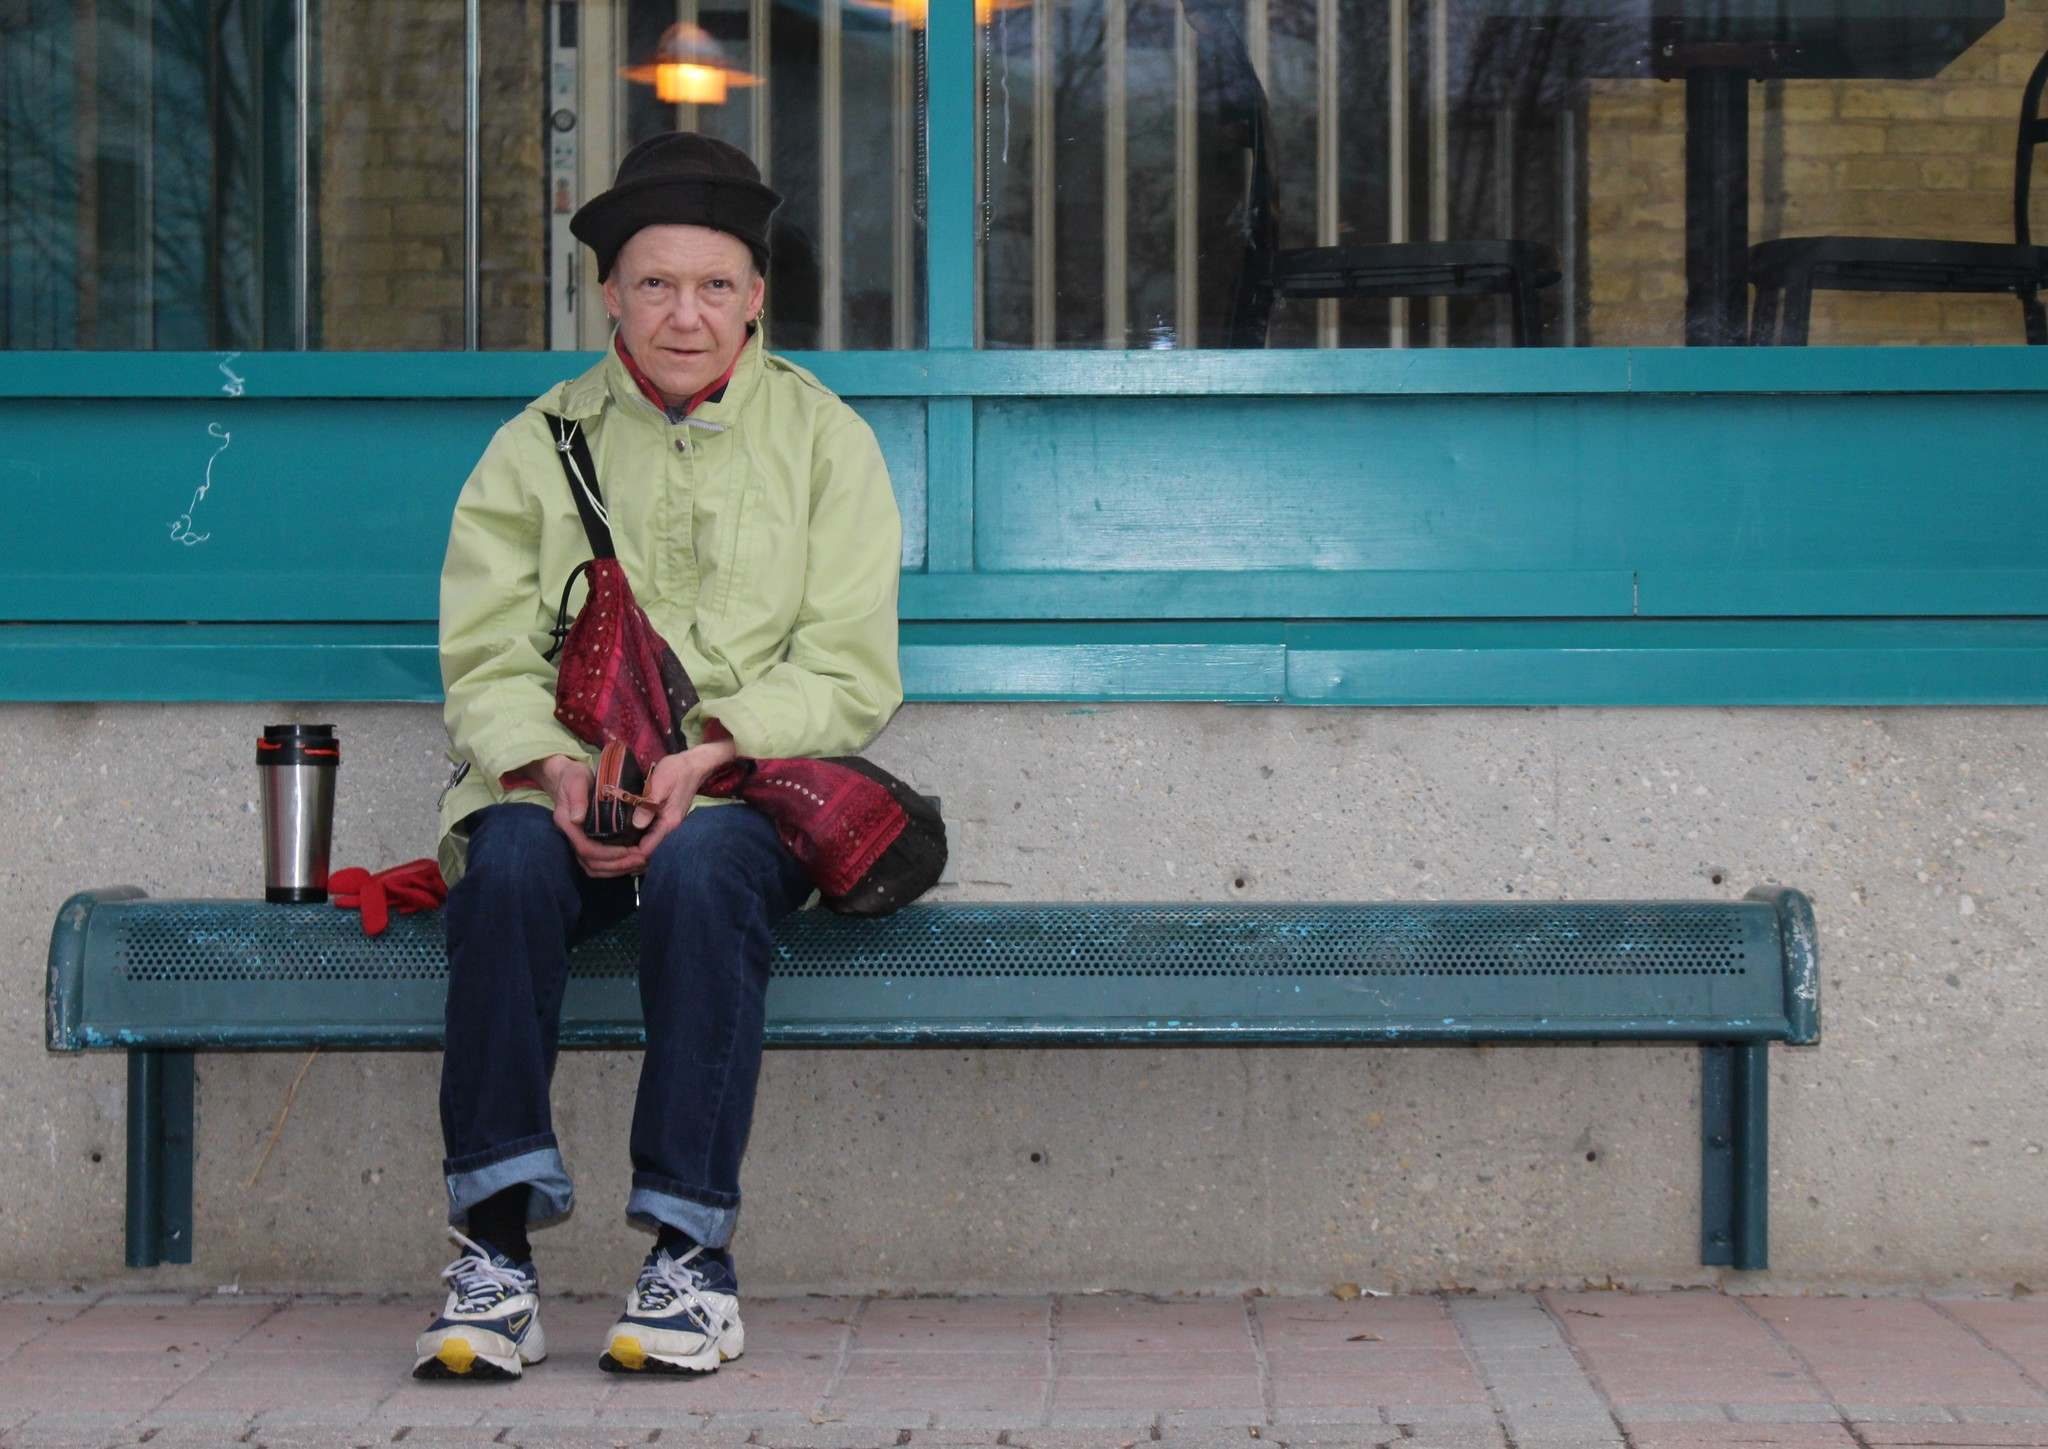 Vee, 72, is blind and walks daily at The Forks.